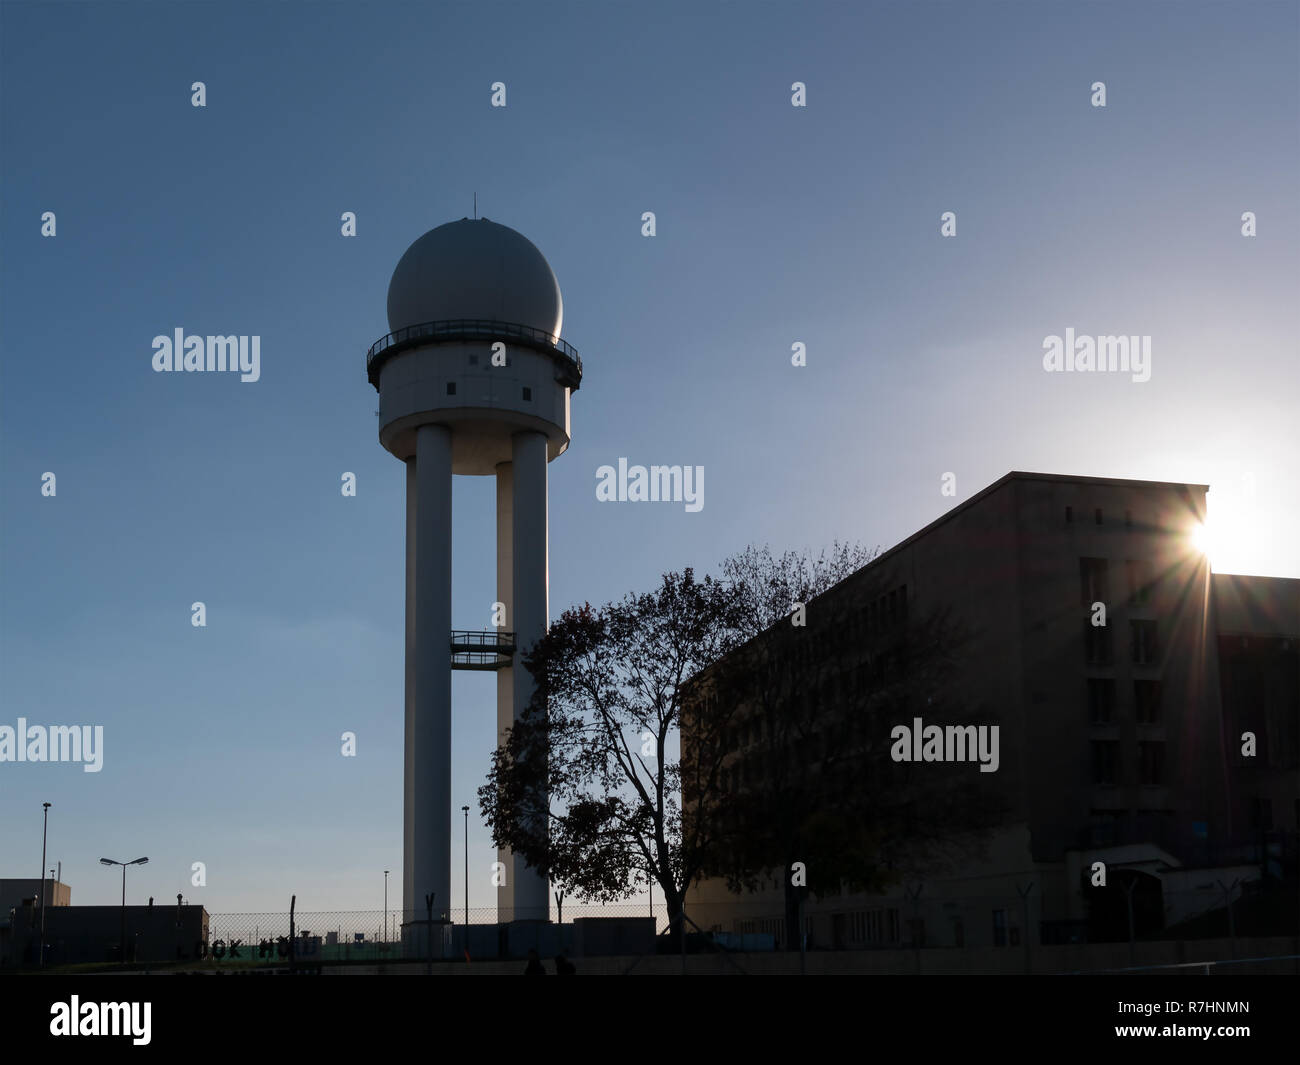 Silhouette of RRP 117 Radar Tower In Public Park Tempelhofer Feld, Former Tempelhof Airport In Berlin, Germany - Stock Image